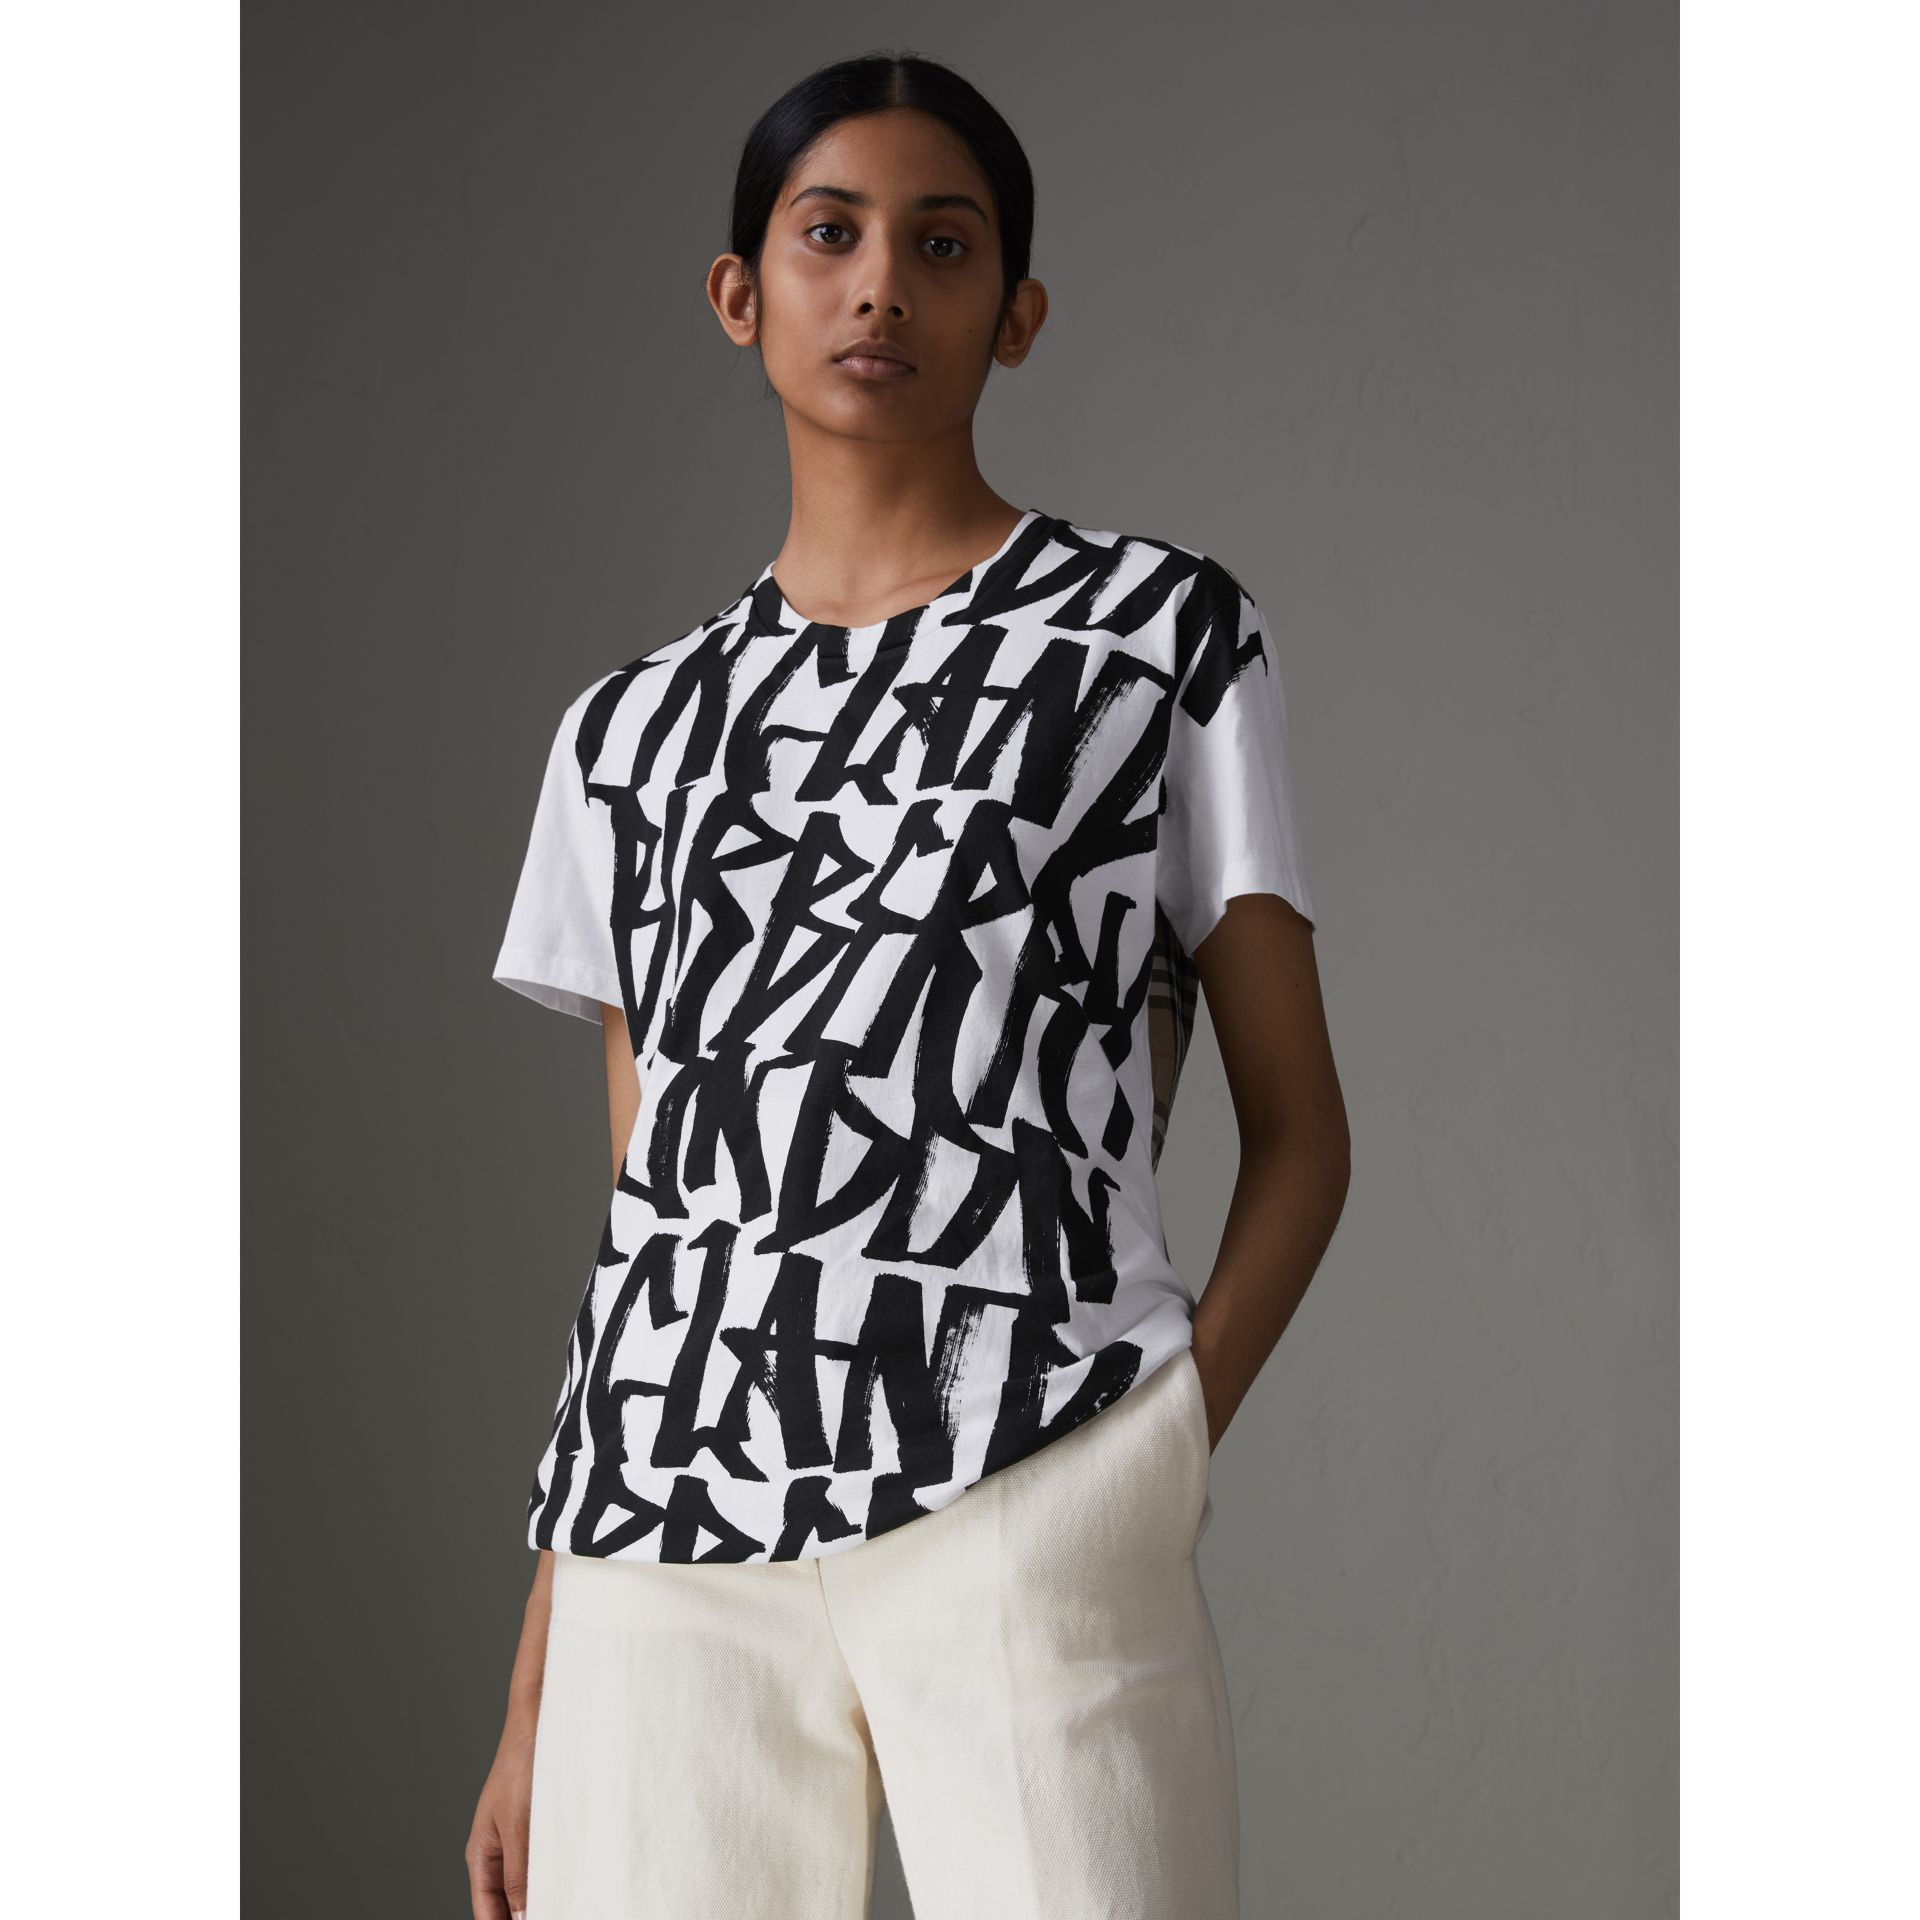 Graffiti Print and Vintage Check T-shirt in White - Women | Burberry - gallery image 1